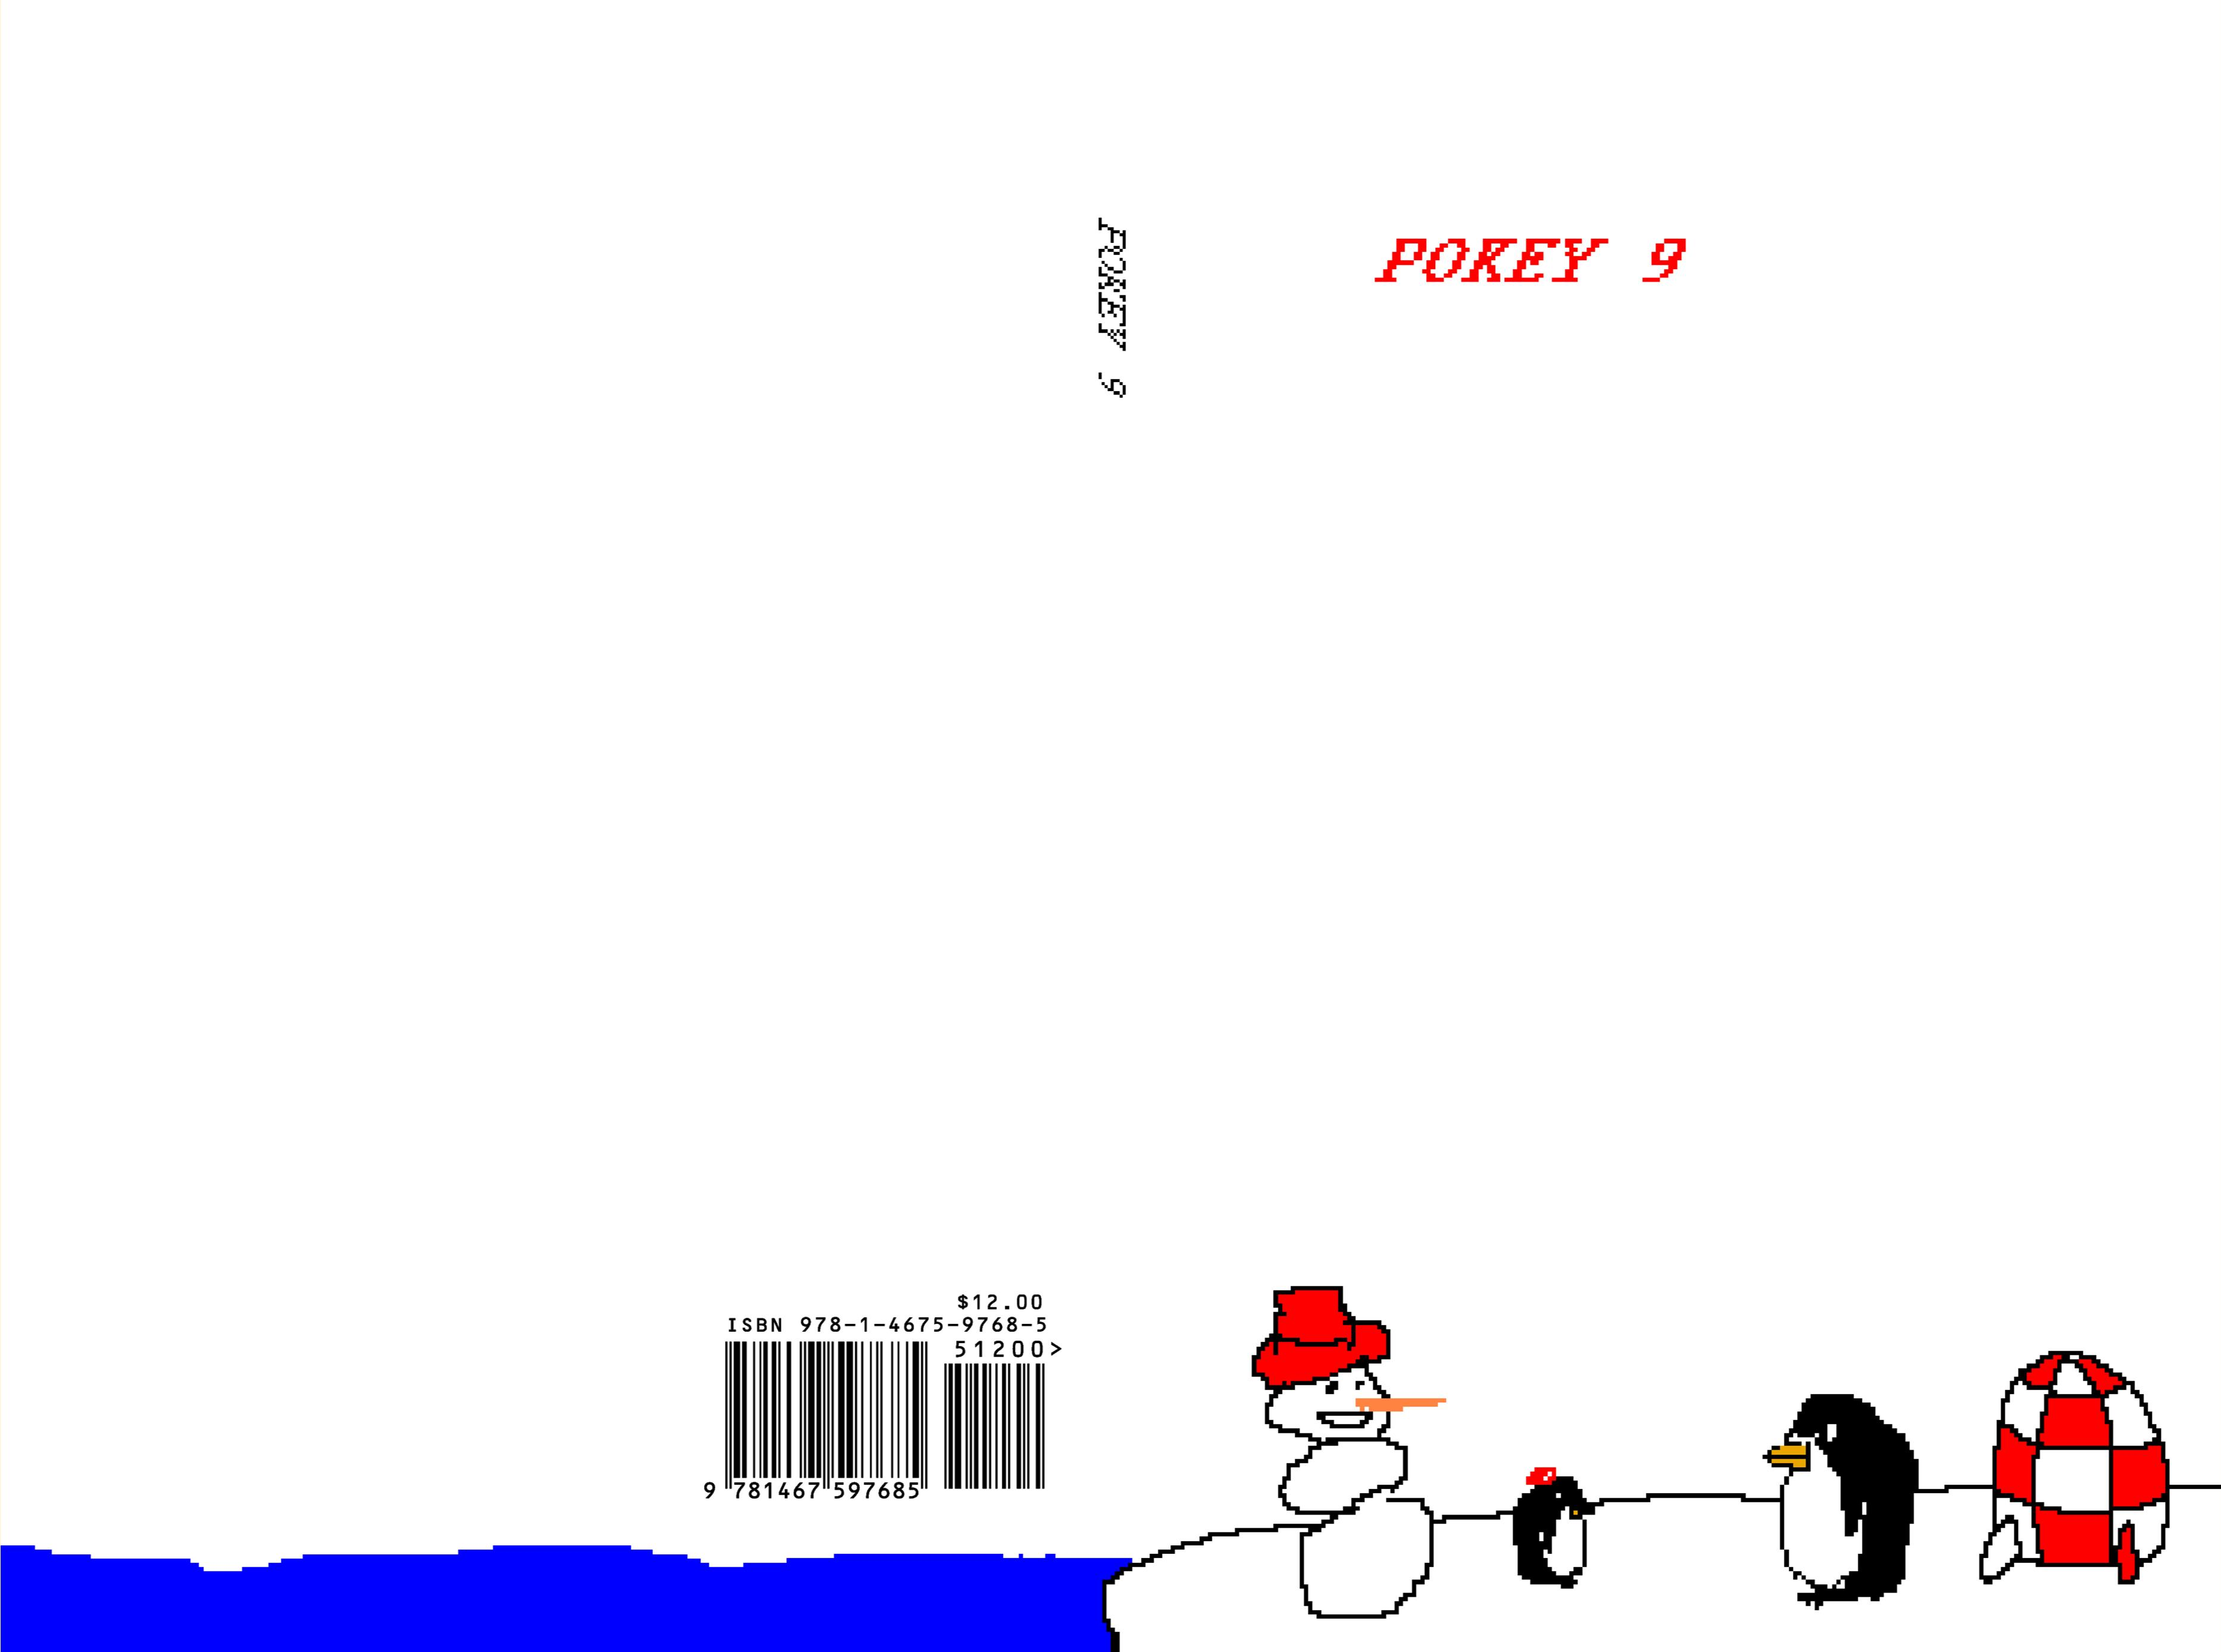 POKEY THE PENGUIN VOL 9 cover image